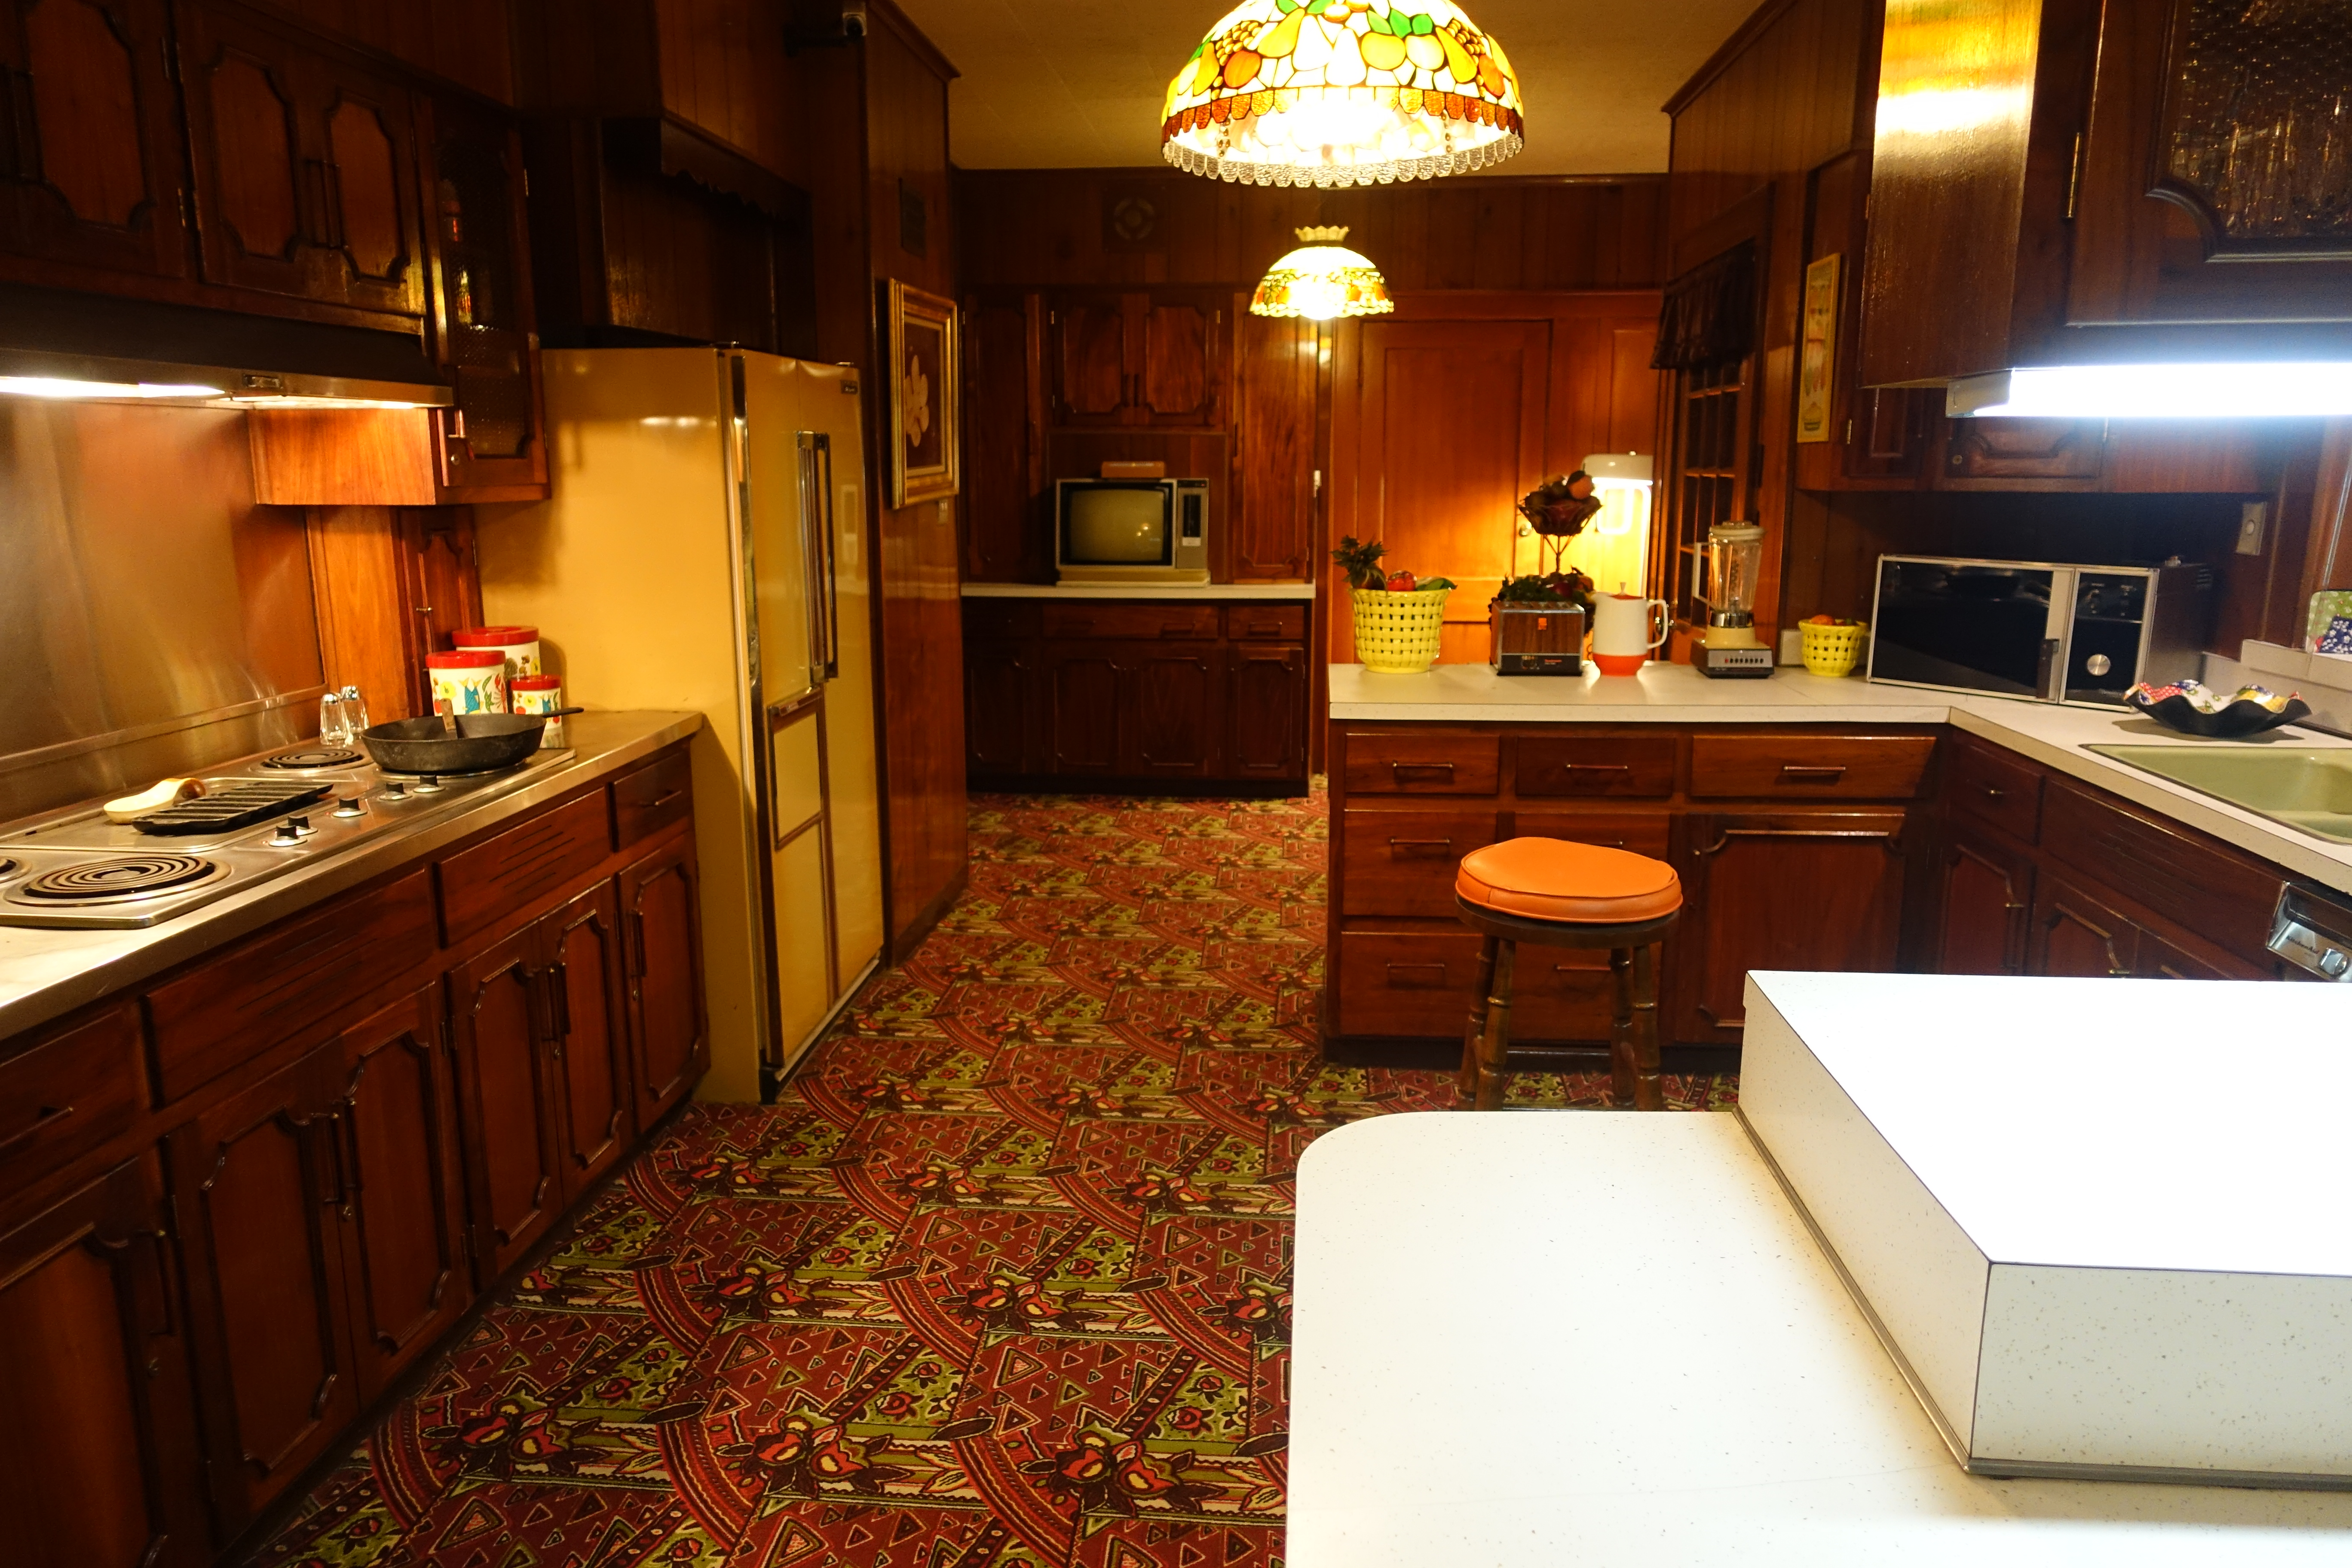 Carpeted Kitchen At Graceland! Apparently It Was Heavily Used, Too. Loved  This.